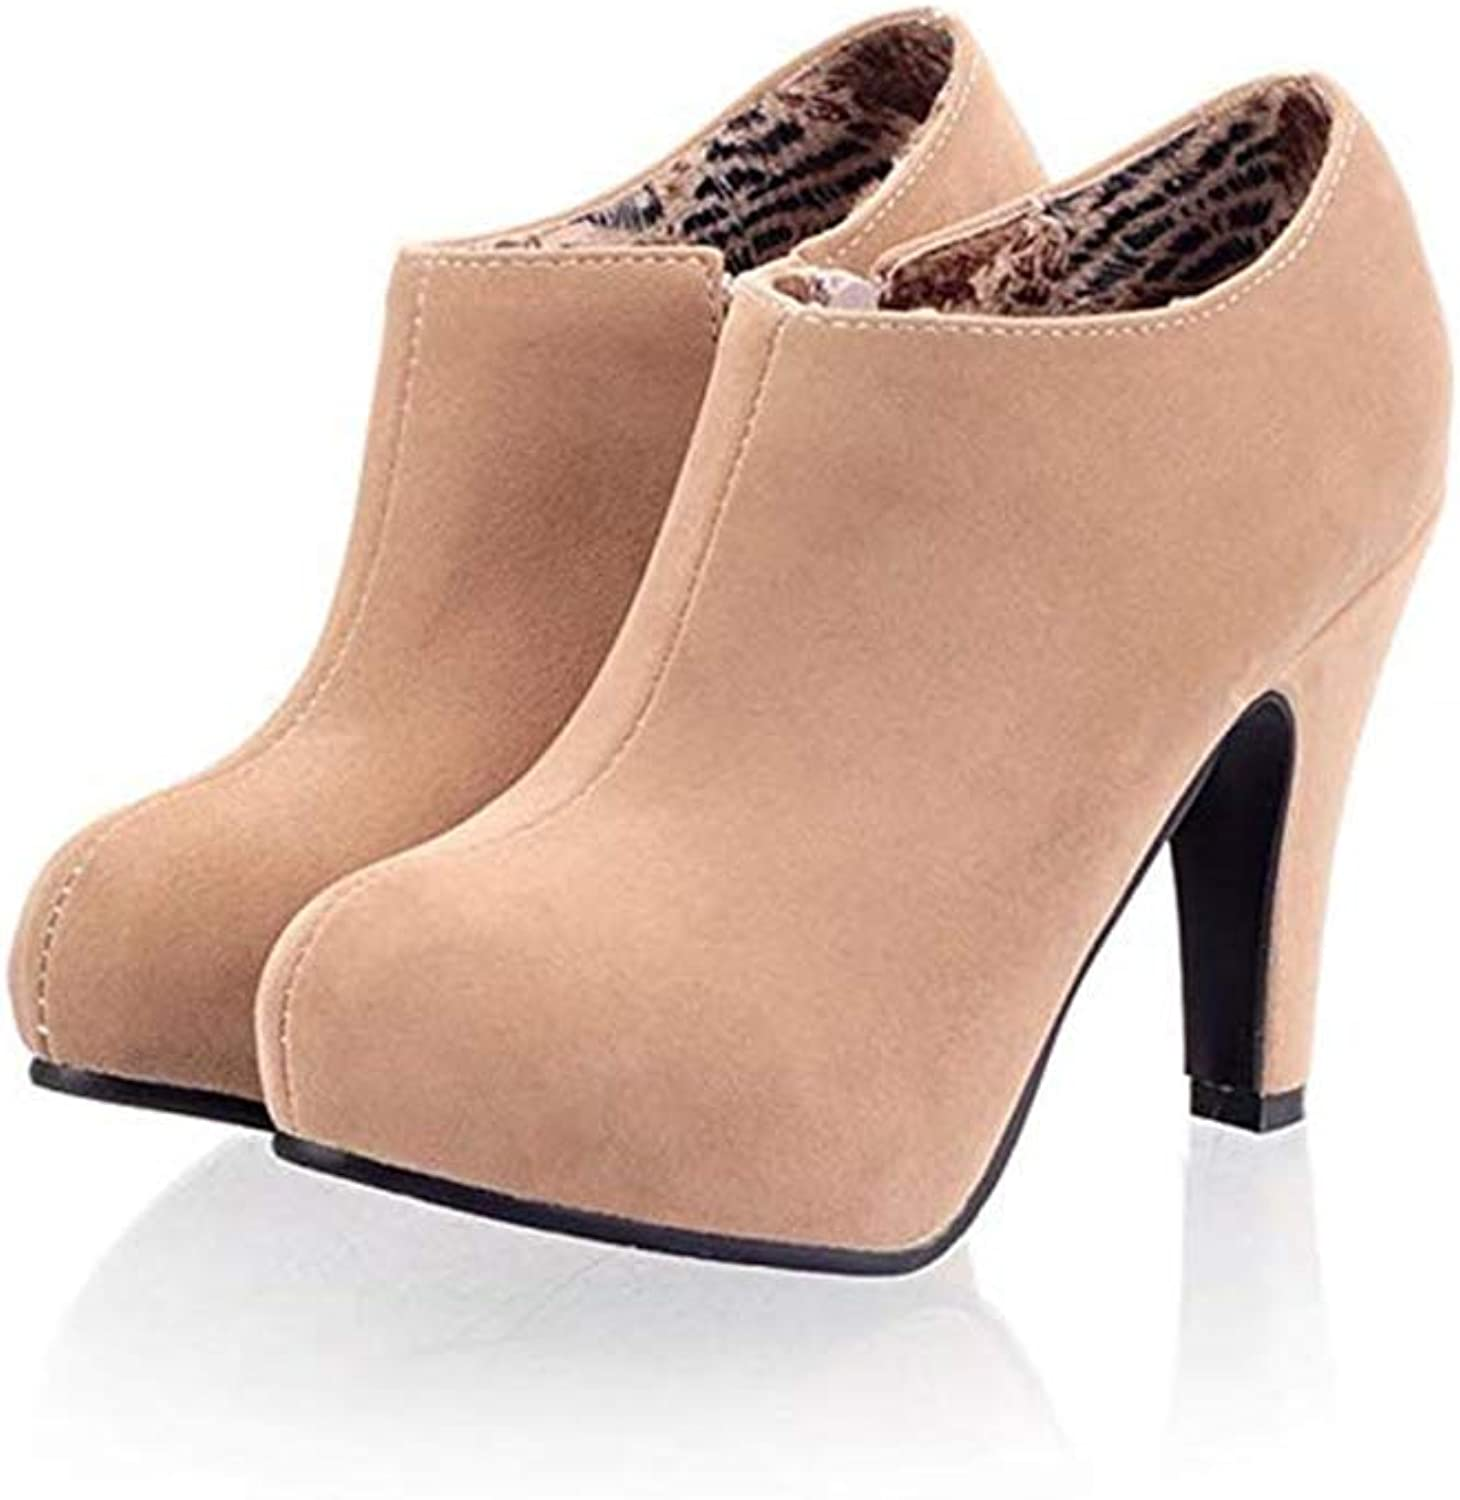 CHENSF Women's Fashion Sexy Platform Zipper Closure Dress Pumps Ankle Boots